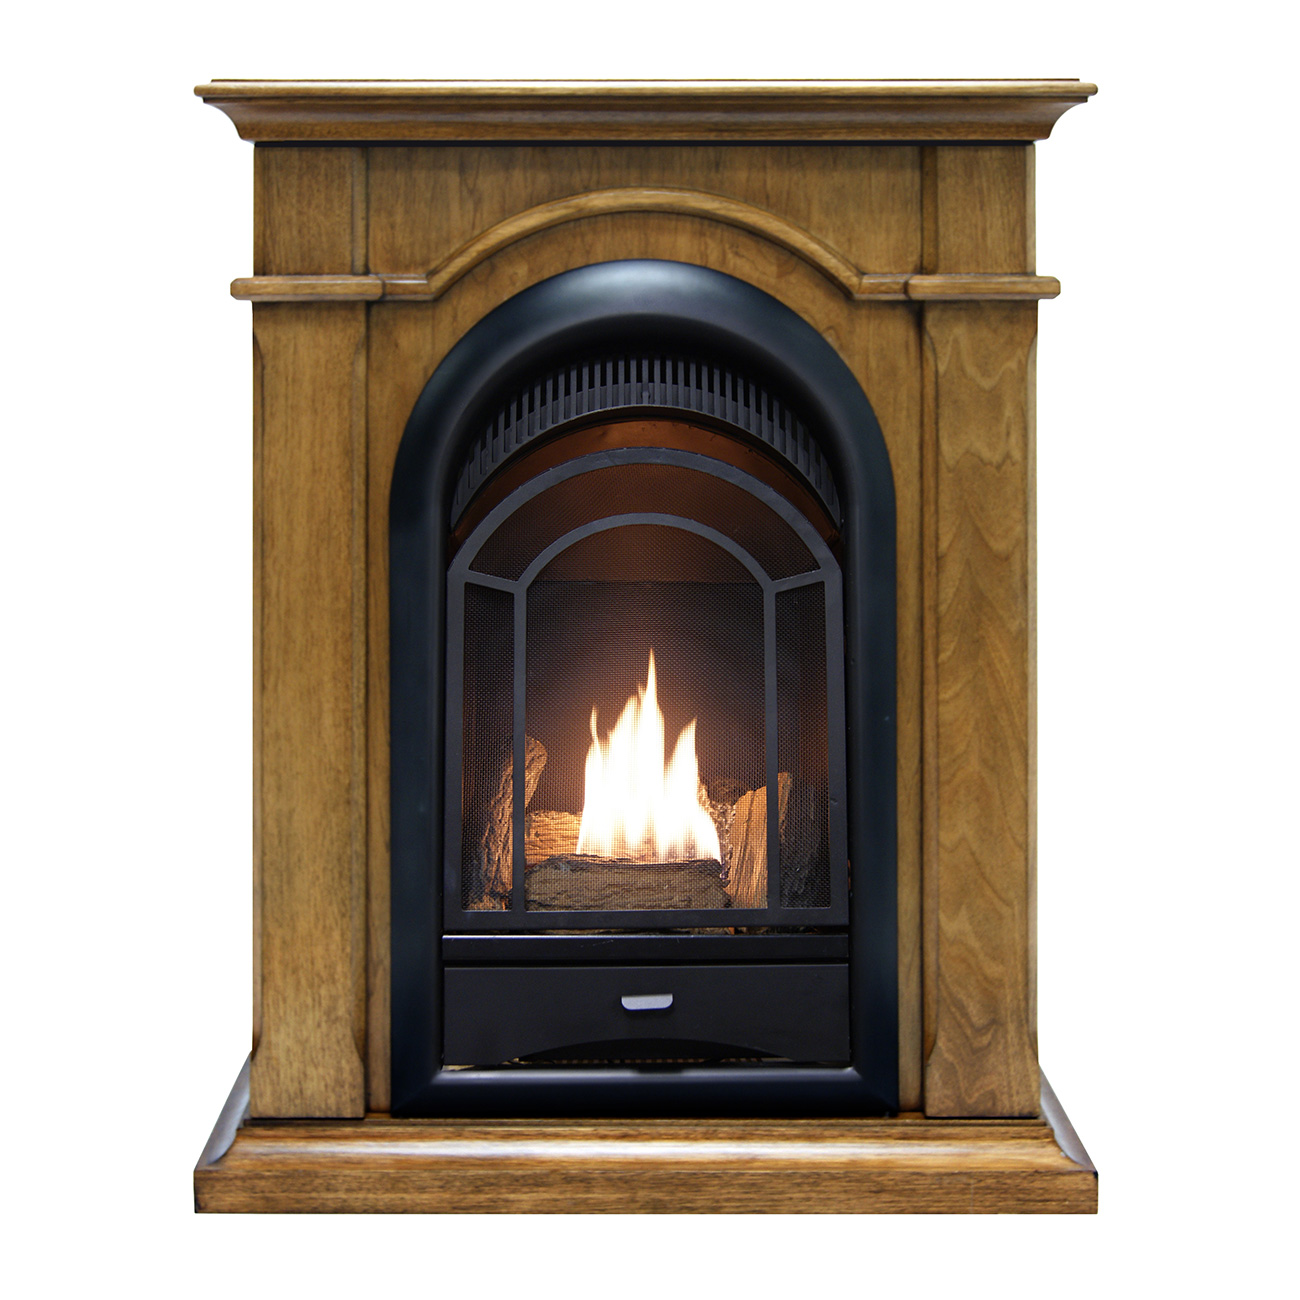 Ventless Fireplace System Corner Combo Dual Fuel In Toasted Almond Finish U2013  15,000 BTU